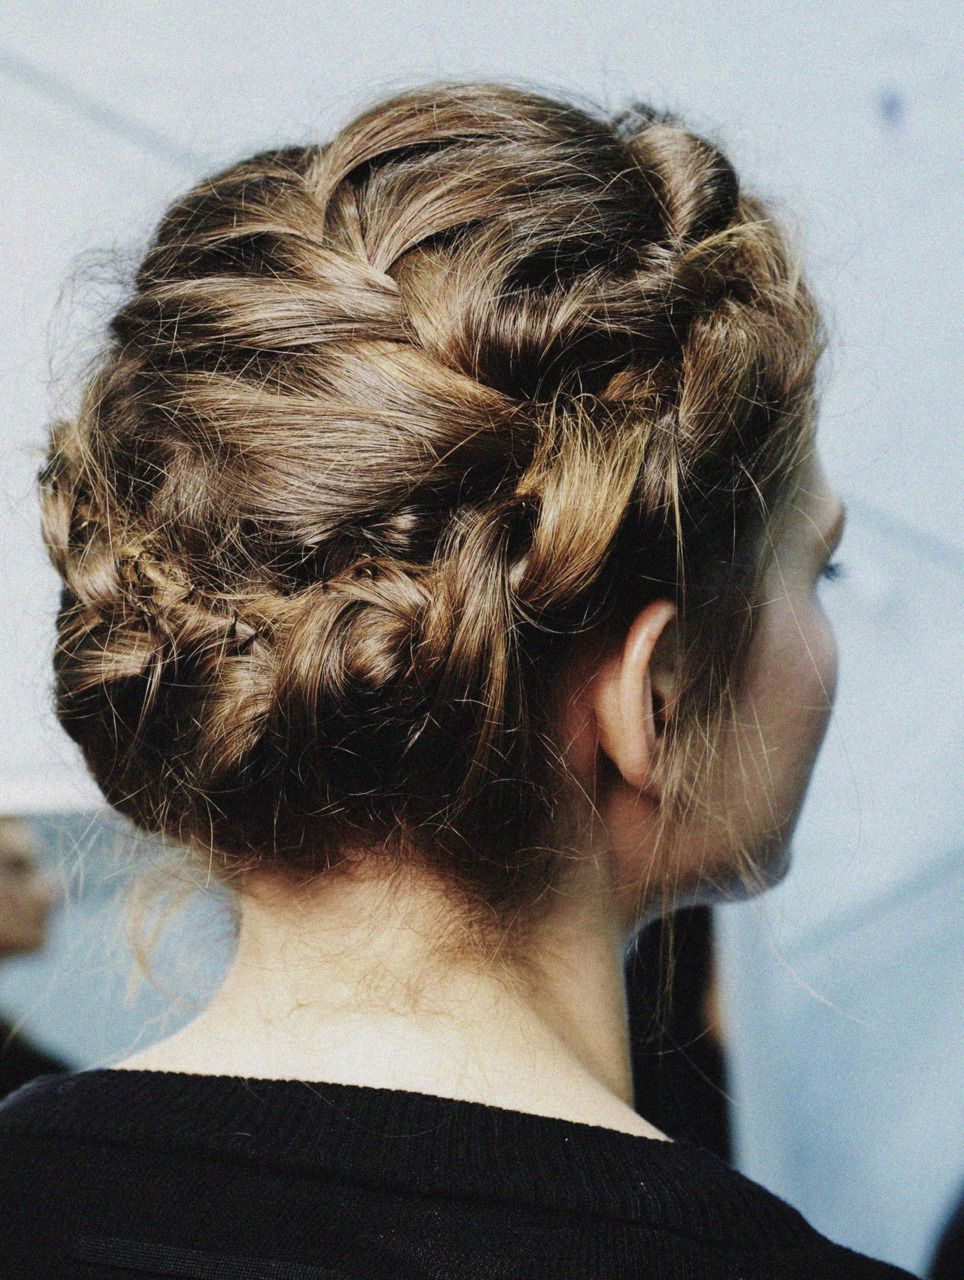 à la russe hairz pinterest updo messy braids and hair and beauty